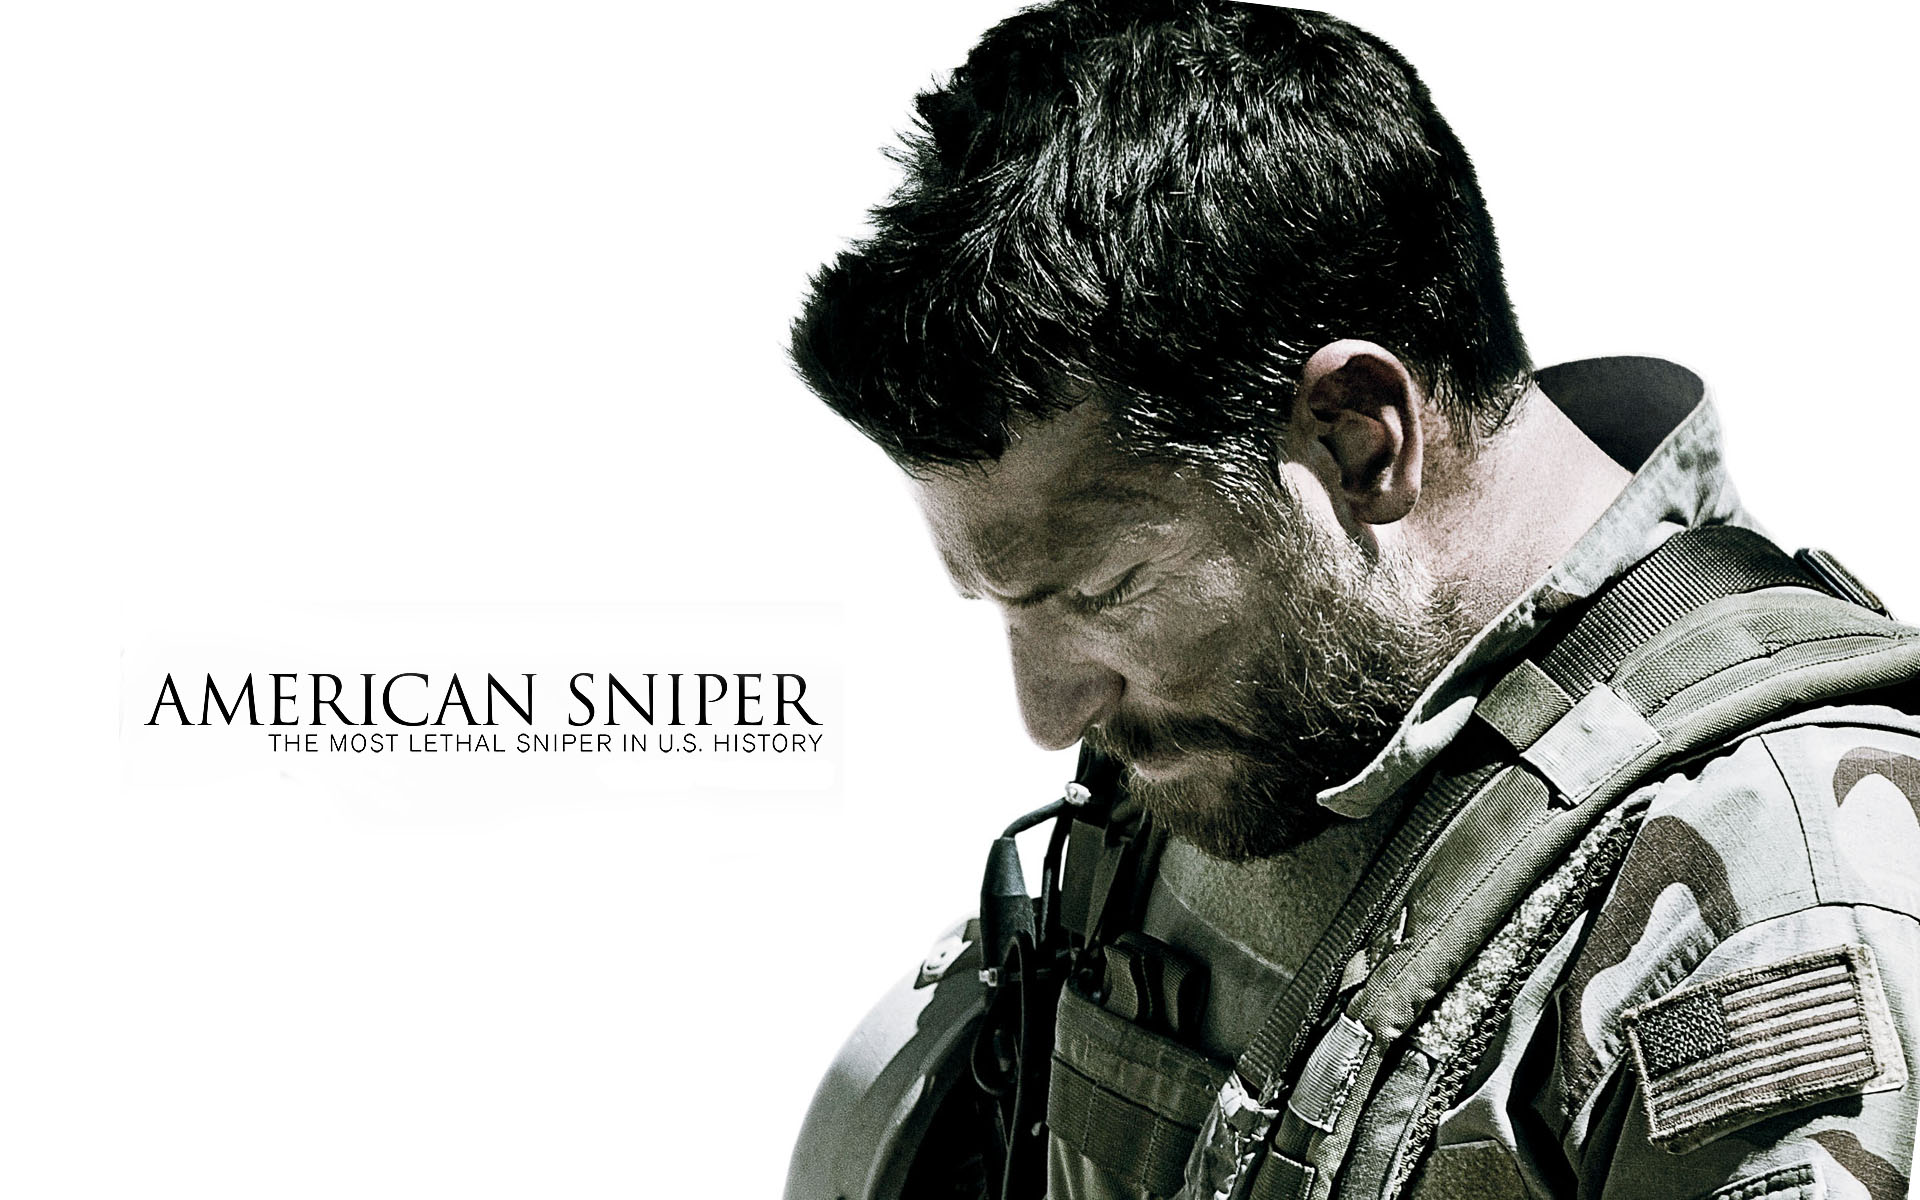 """an analysis of the movie american sniper When asked about the best movie they had seen in the last year, people in a  google survey cited """"american sniper"""" far more than any other film  the  upshot provides news, analysis and graphics about politics, policy and."""